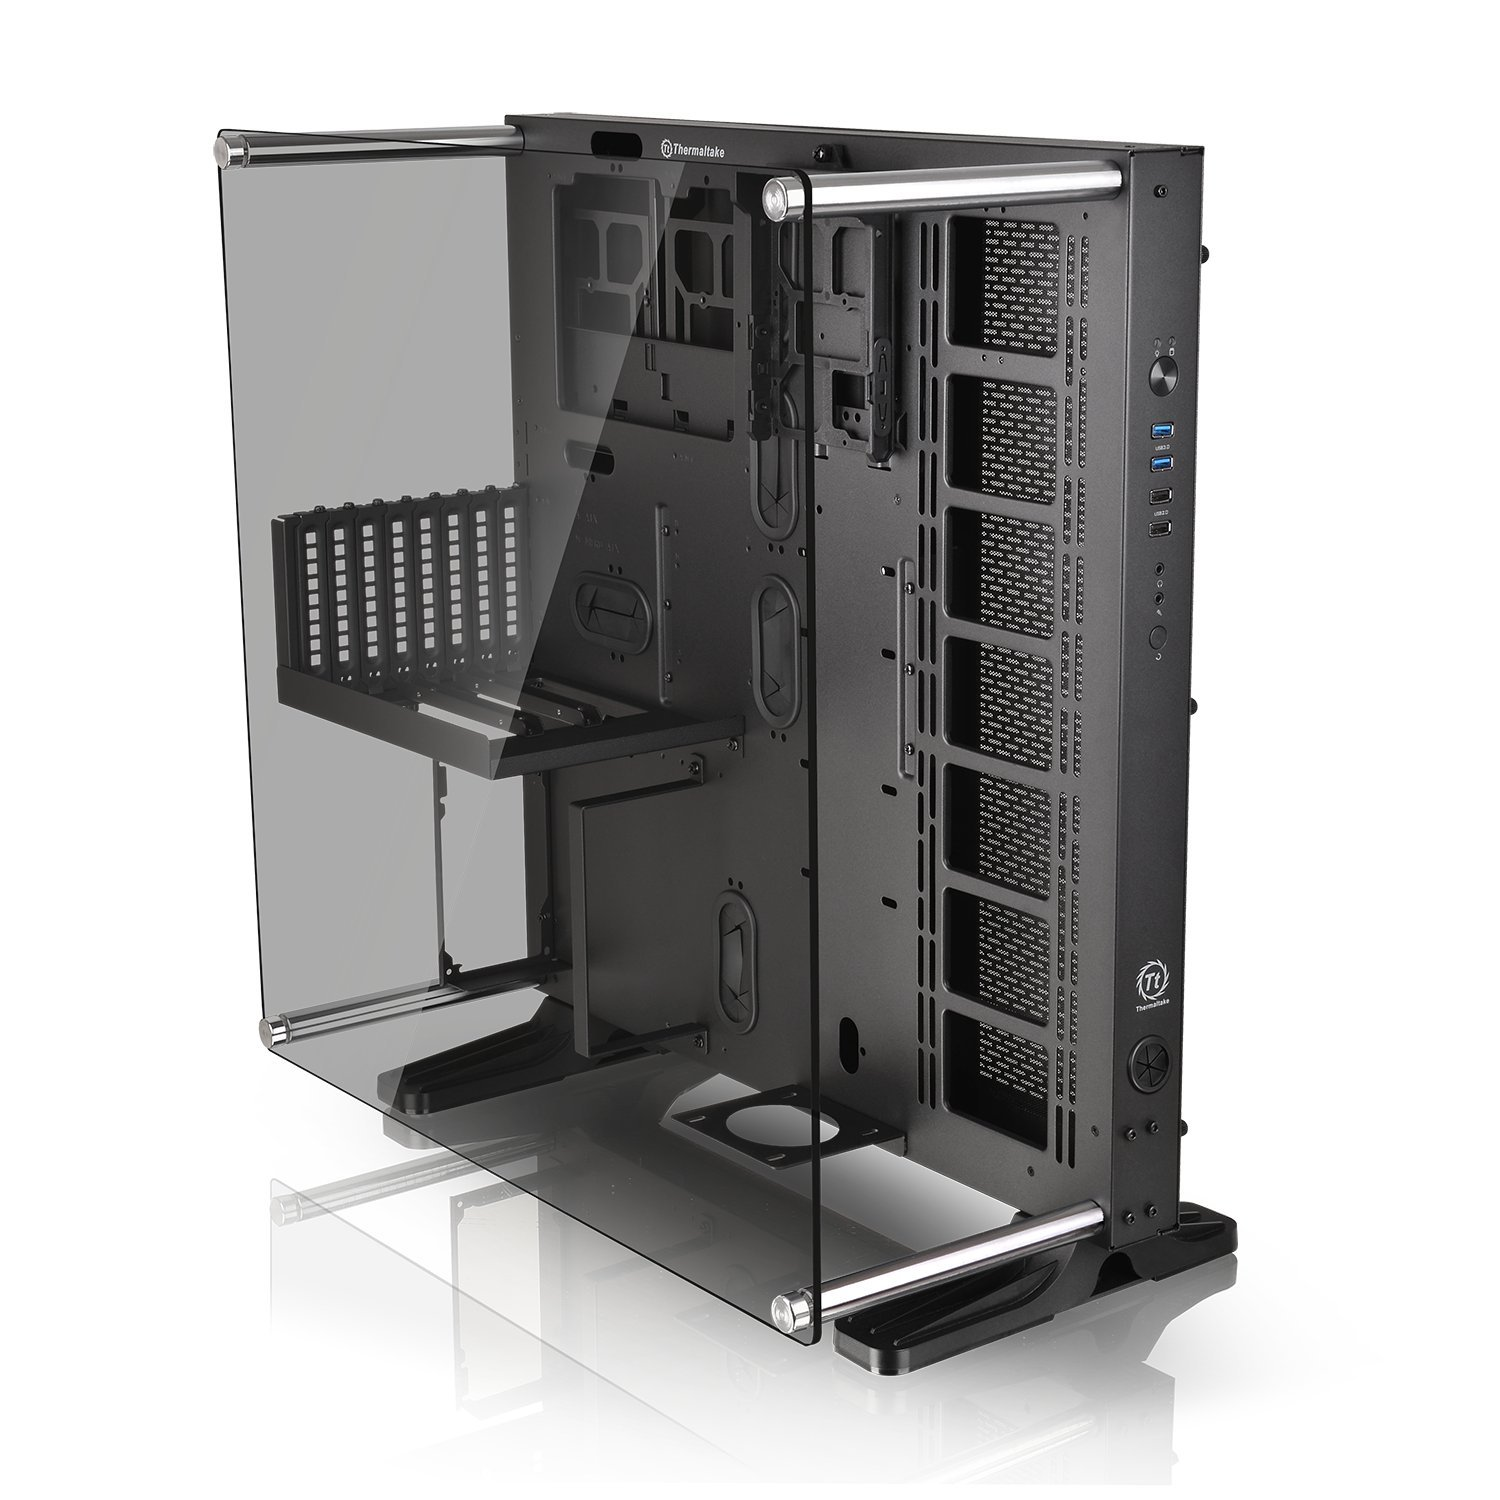 Thermaltake Core P7 Tempered Glass Edition E-ATX Open Frame Panoramic Viewing Tt LCS Certified Gaming Computer Chassis CA-1I2-00F1WN-00 by Thermaltake (Image #3)